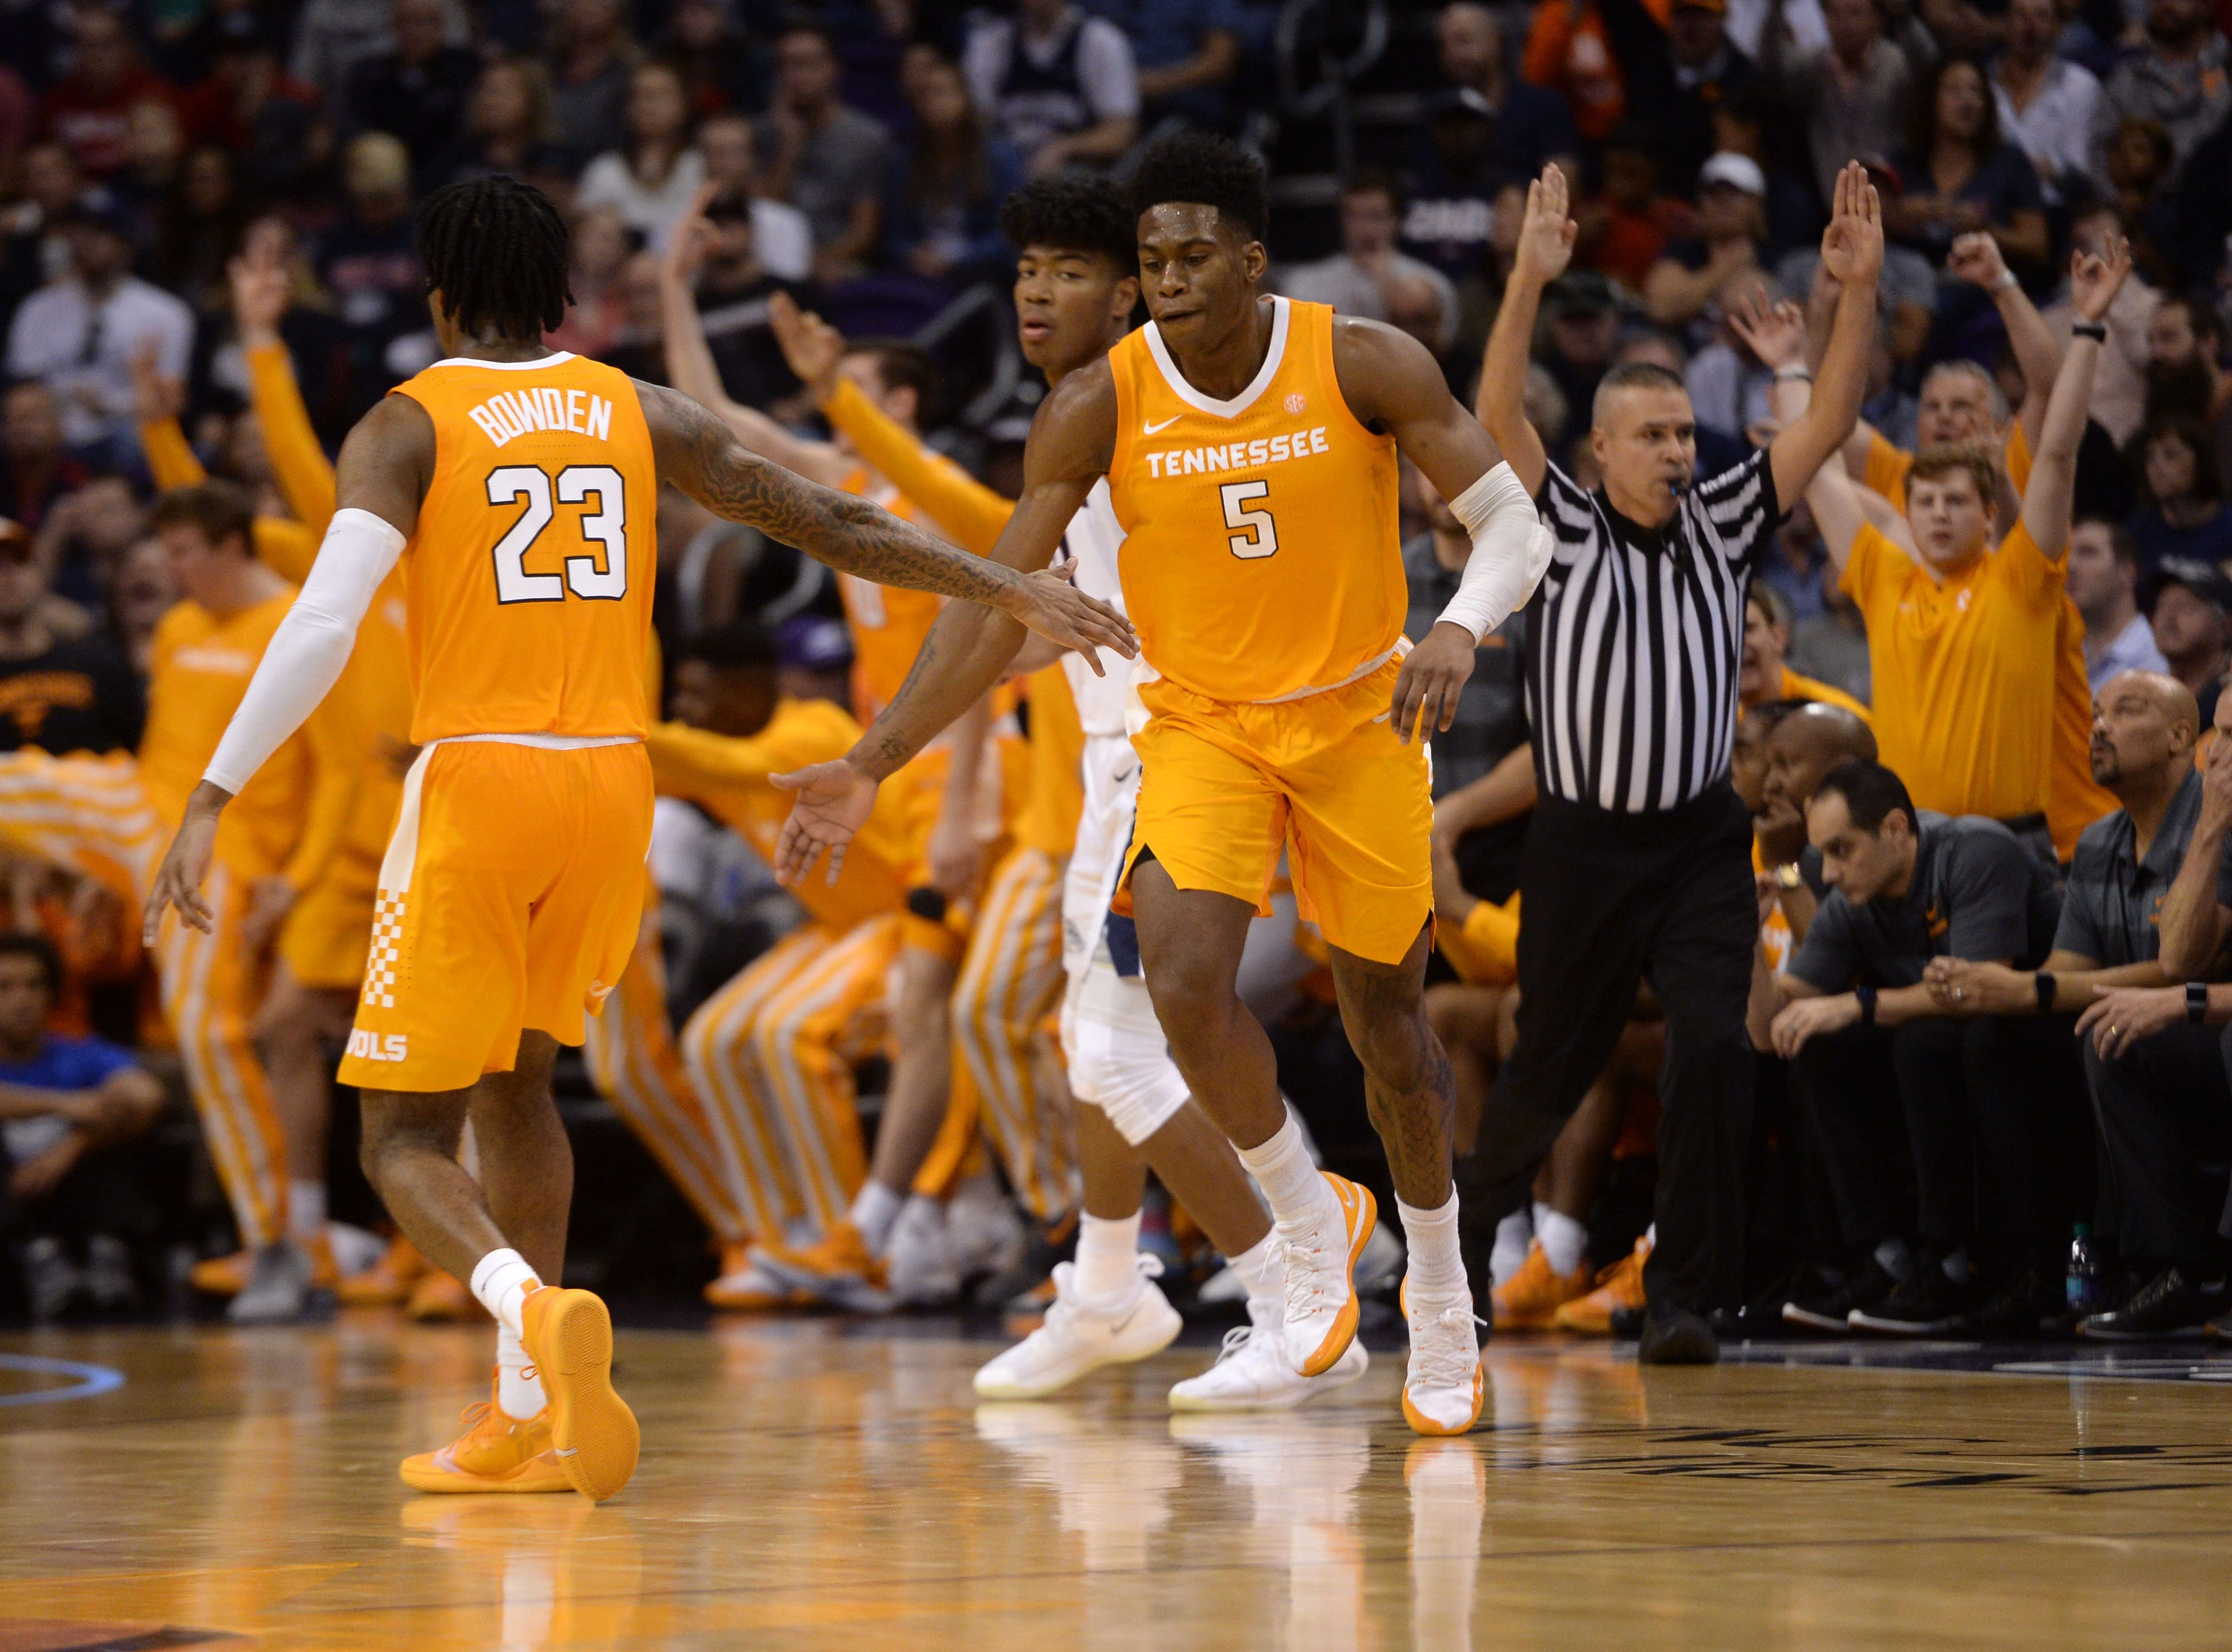 Dec 9, 2018; Phoenix, AZ, USA; Tennessee Volunteers guard Admiral Schofield (5) slaps hands with Tennessee Volunteers guard Jordan Bowden (23) after making a three point basket against the Gonzaga Bulldogs during the second half at Talking Stick Resort Arena.